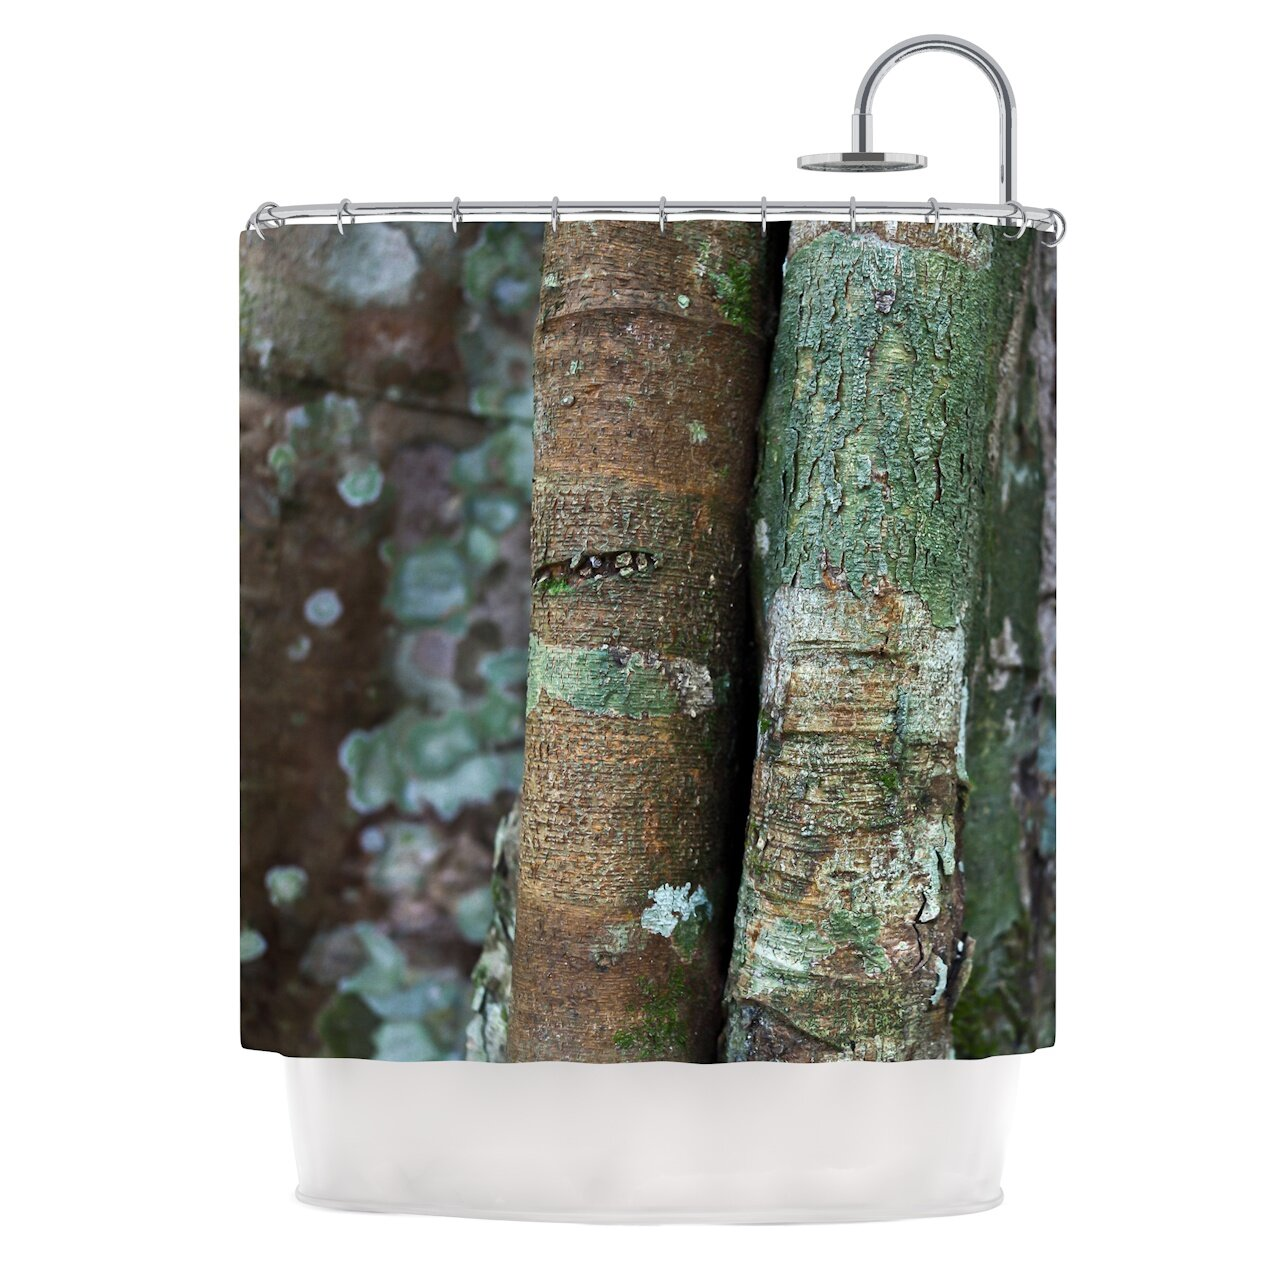 Into the Woods by Susan Sanders Rustic Shower Curtain